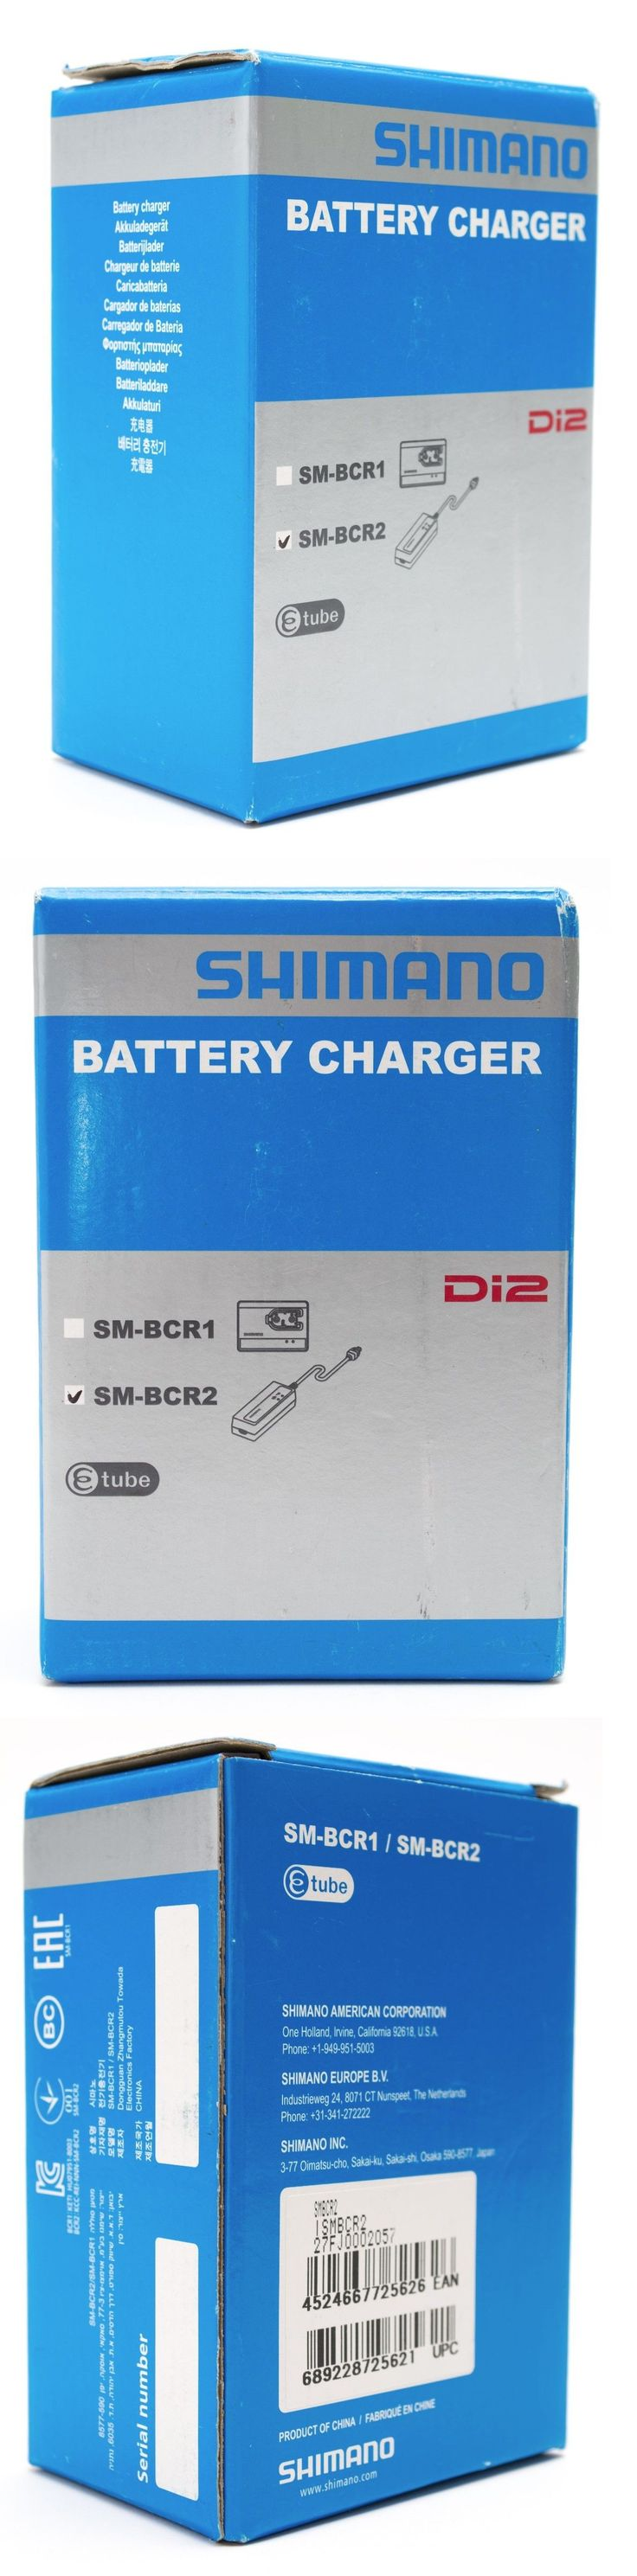 Electric Bicycle Components 177814: Shimano Sm-Bcr2 Dura Ace Di2 Road Cyclocross Bike Battery Charger Etube New -> BUY IT NOW ONLY: $79.95 on eBay!